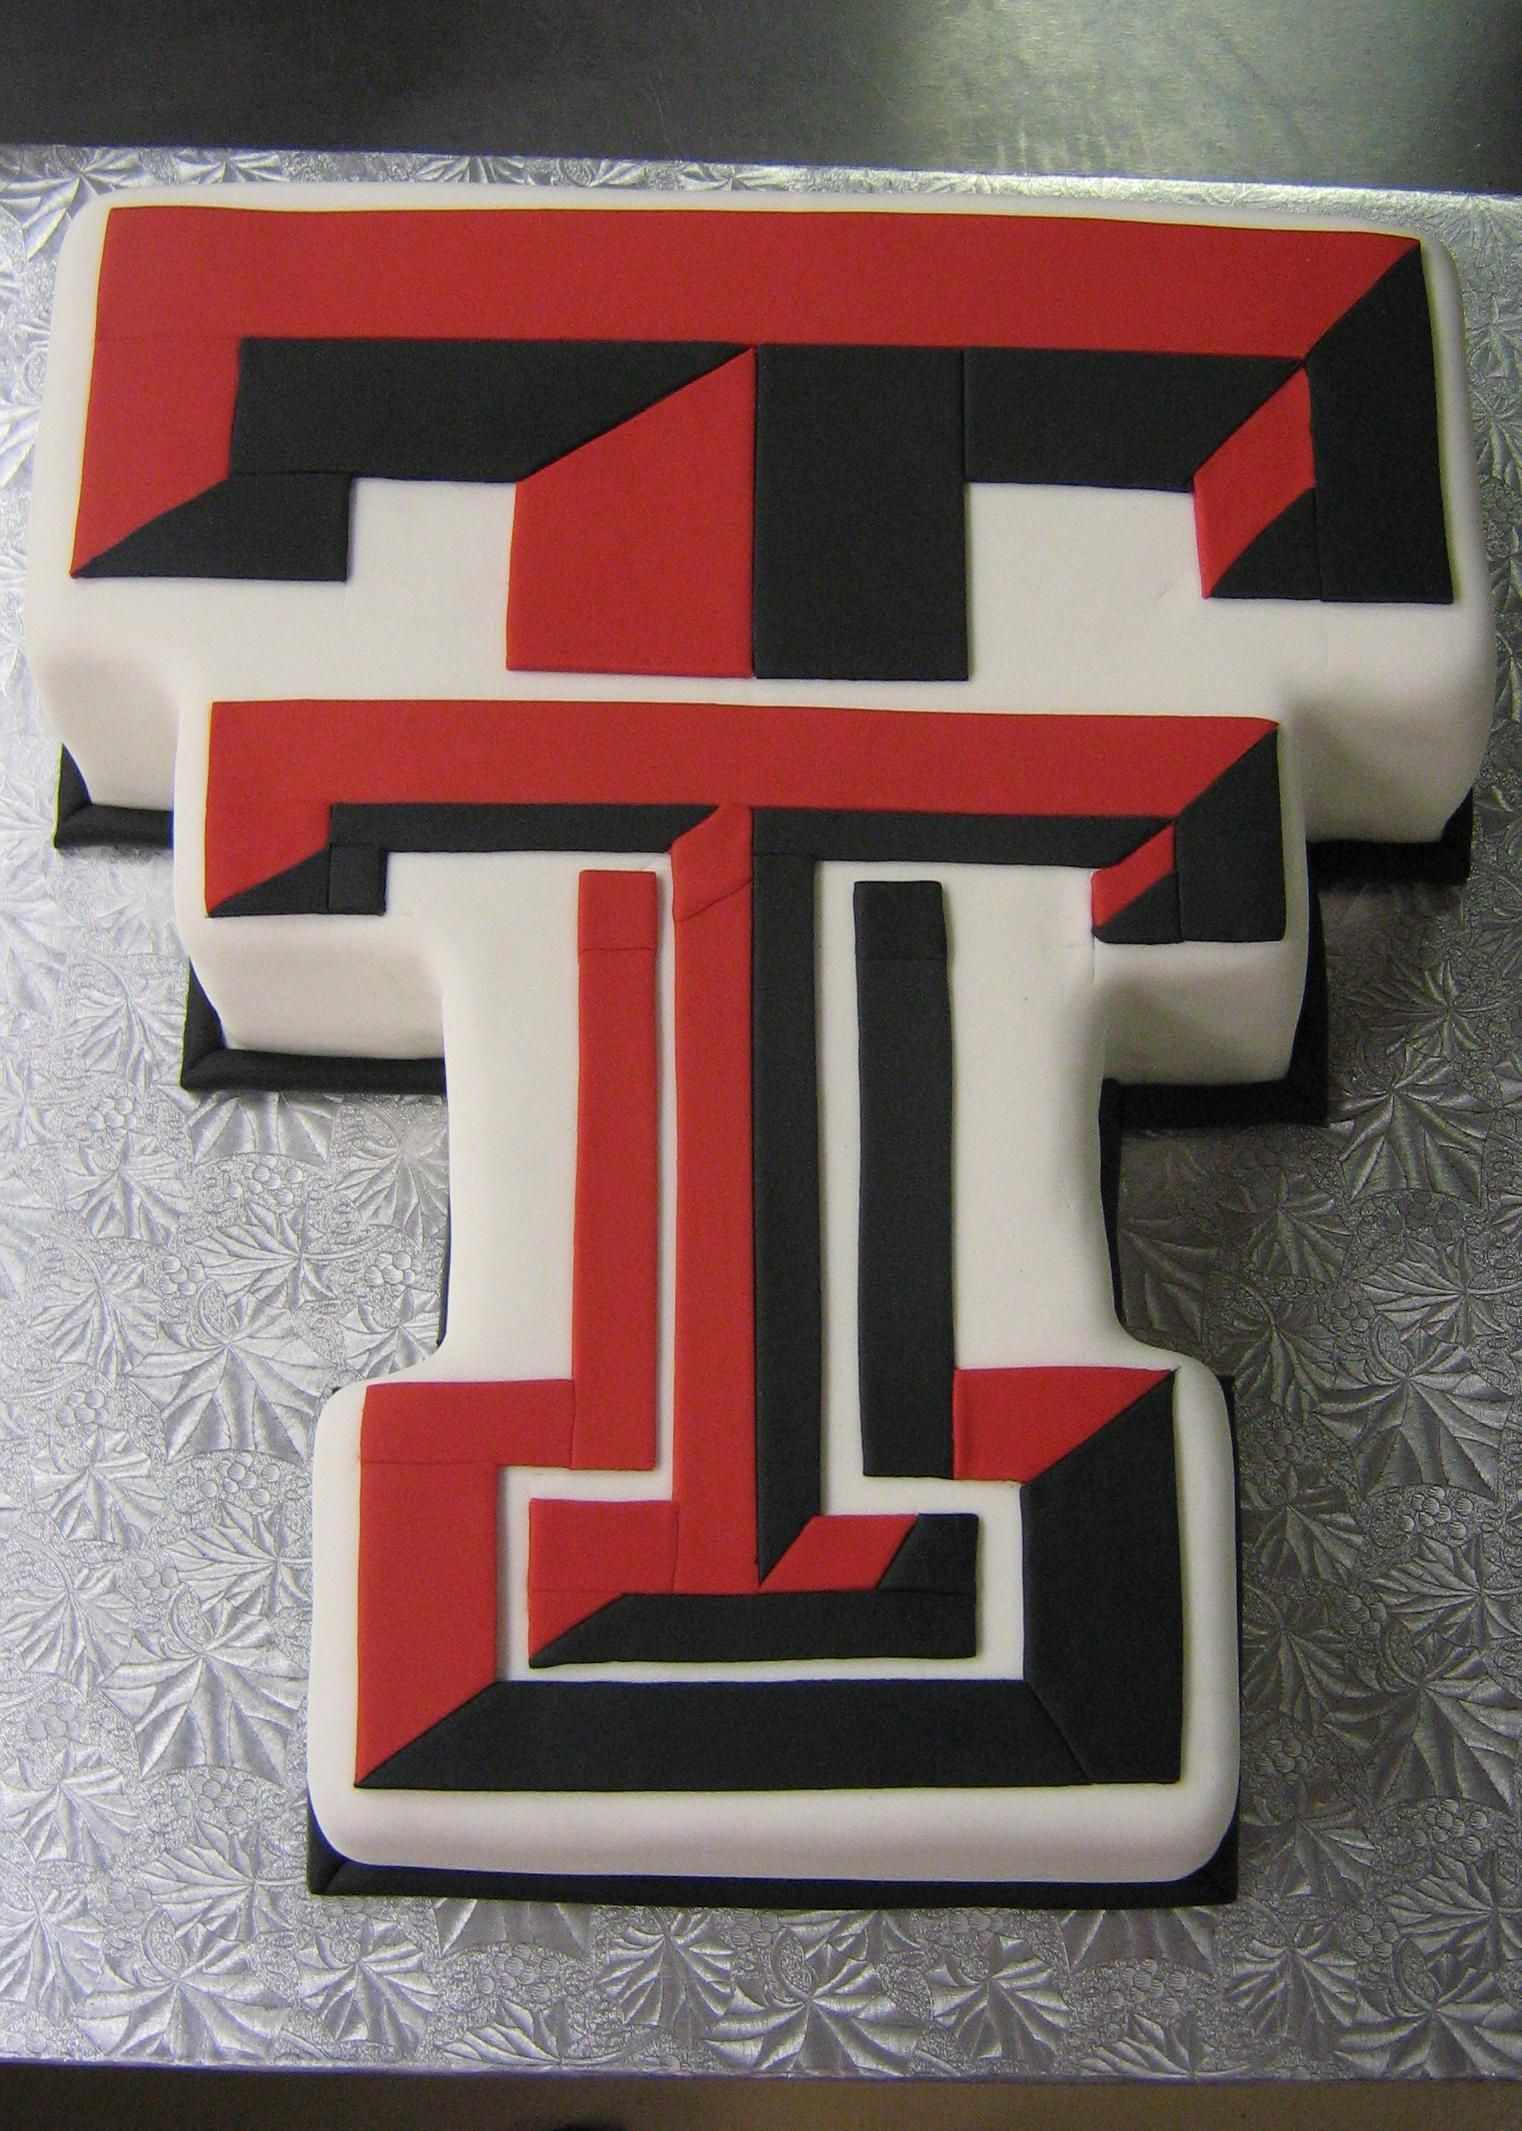 Texas Tech Ok Not Yhe Most Gorgeous Cake But It Tech So Its A